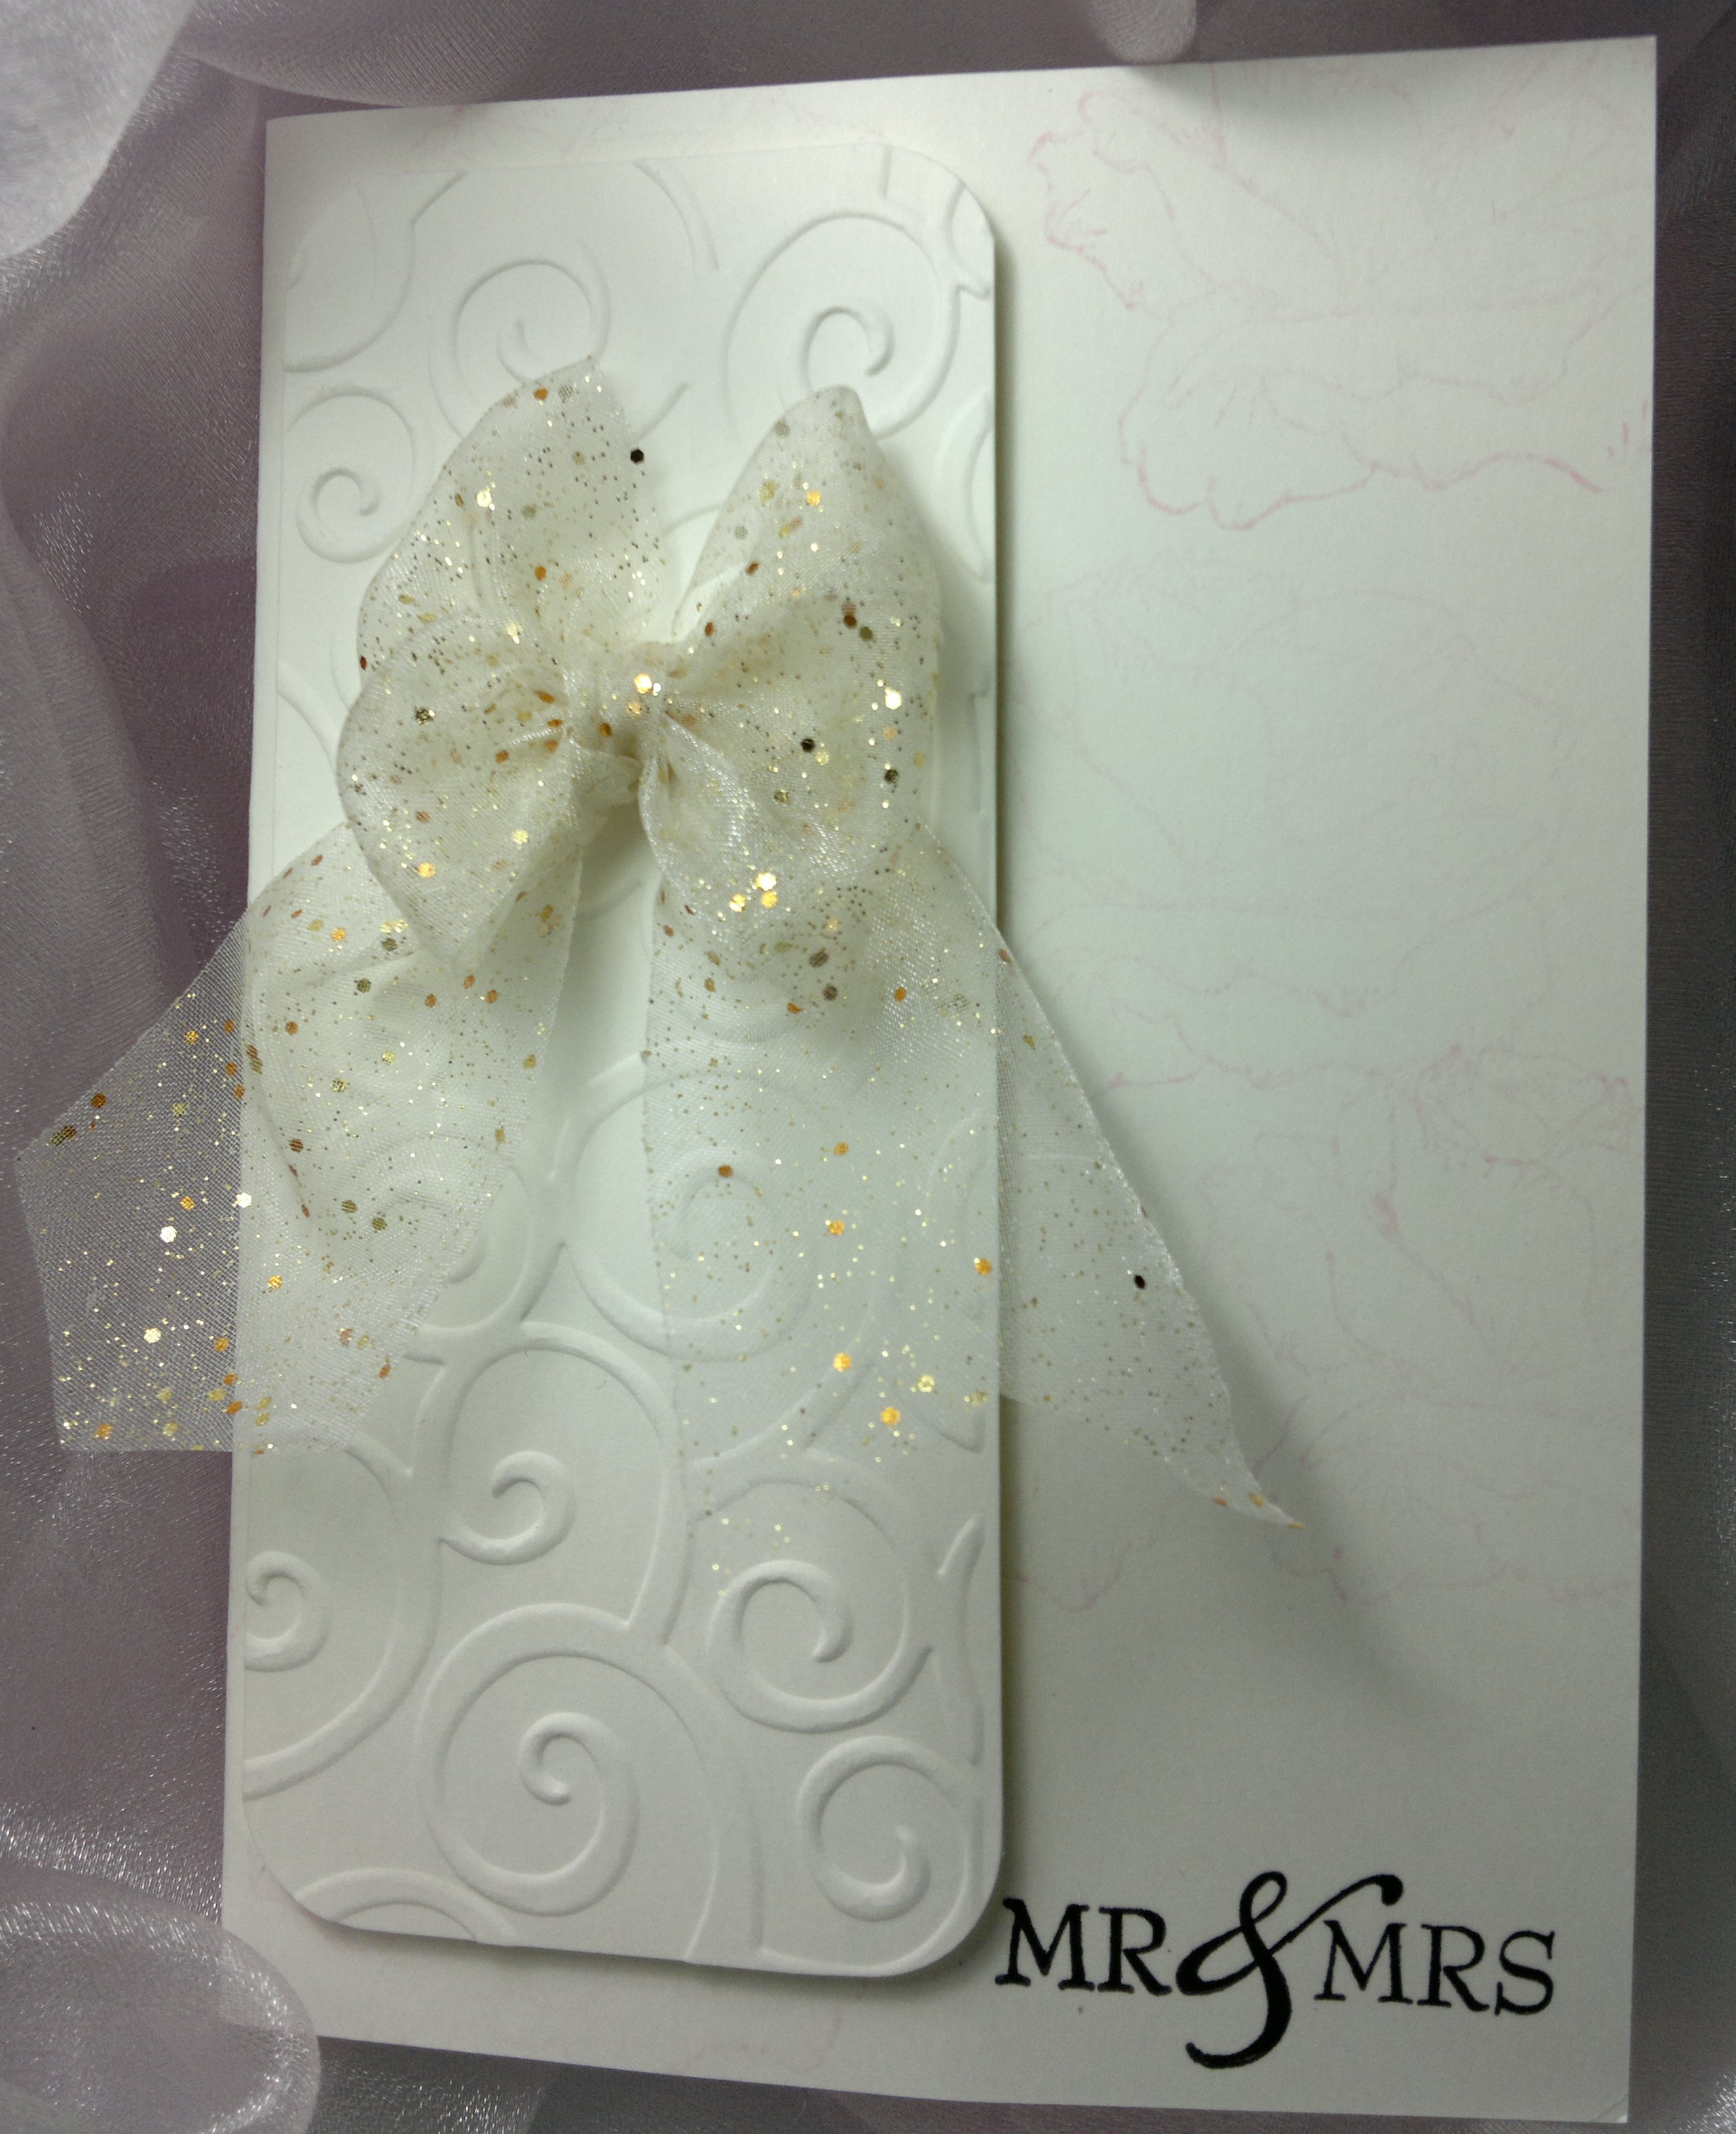 Wedding Cards Ideas To Make: Ideas For Cardmaking